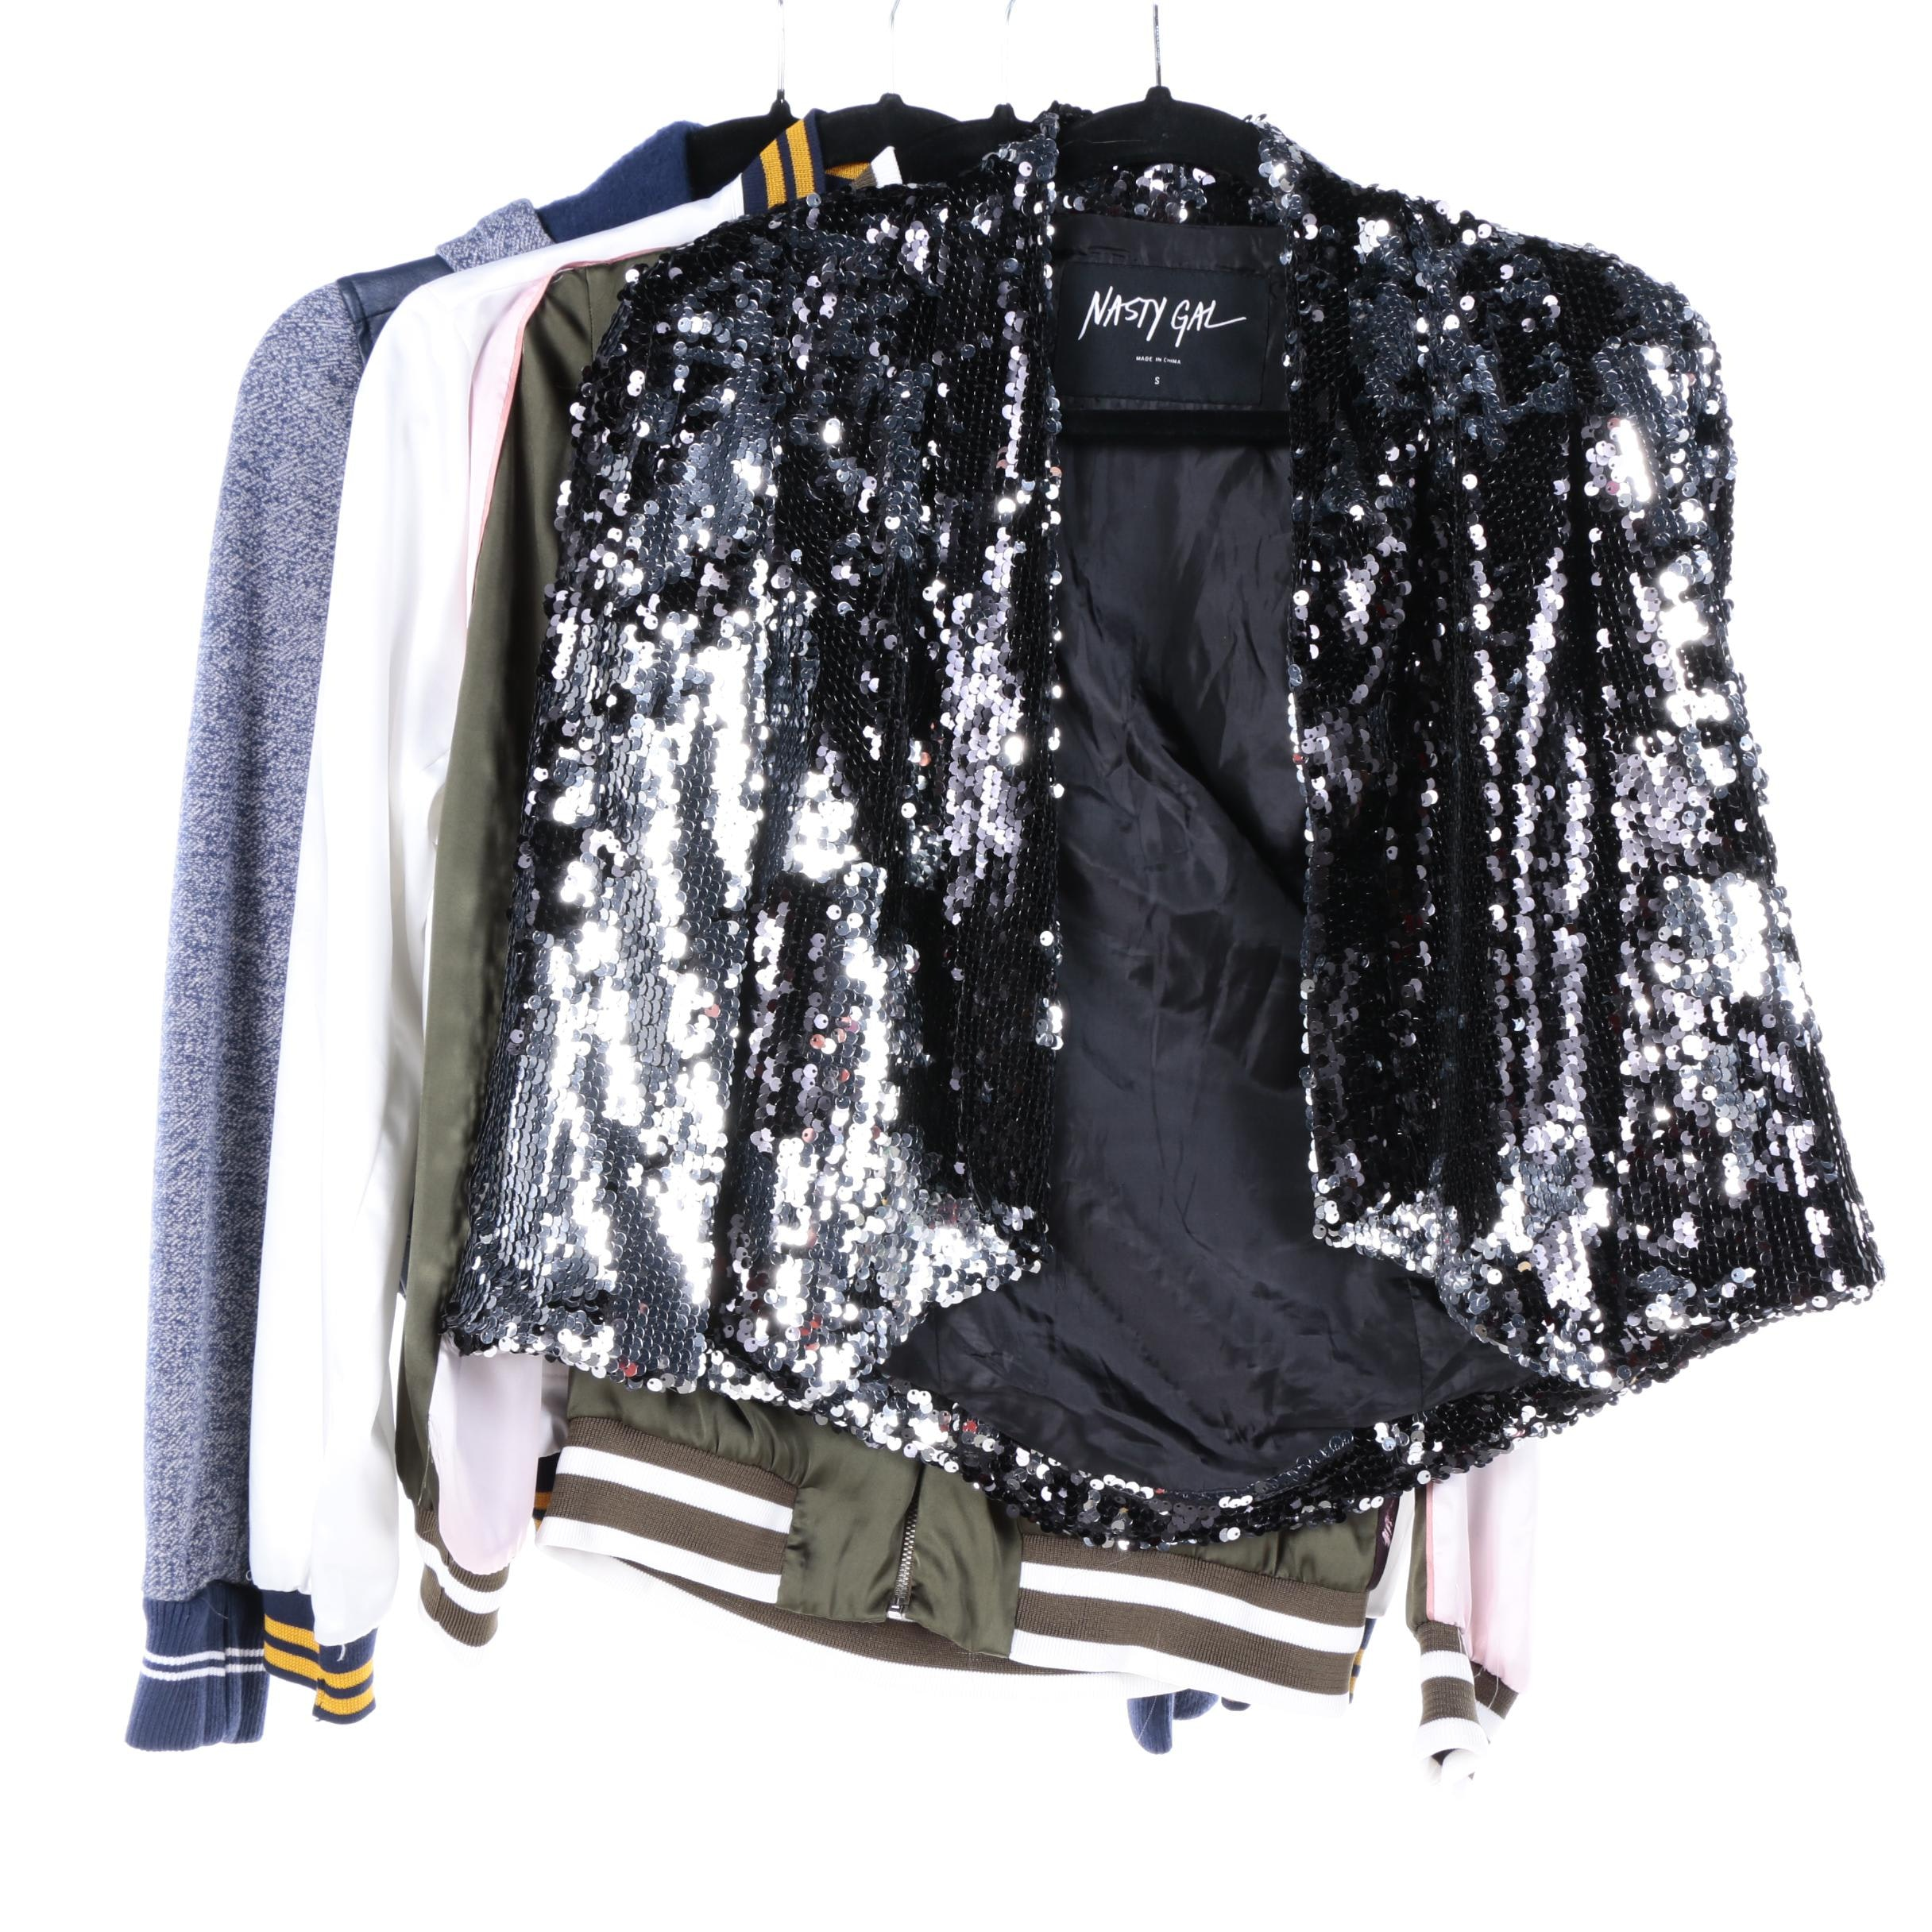 Women's Casual and Sequined Jackets Including Nasty Gal and LA Hearts